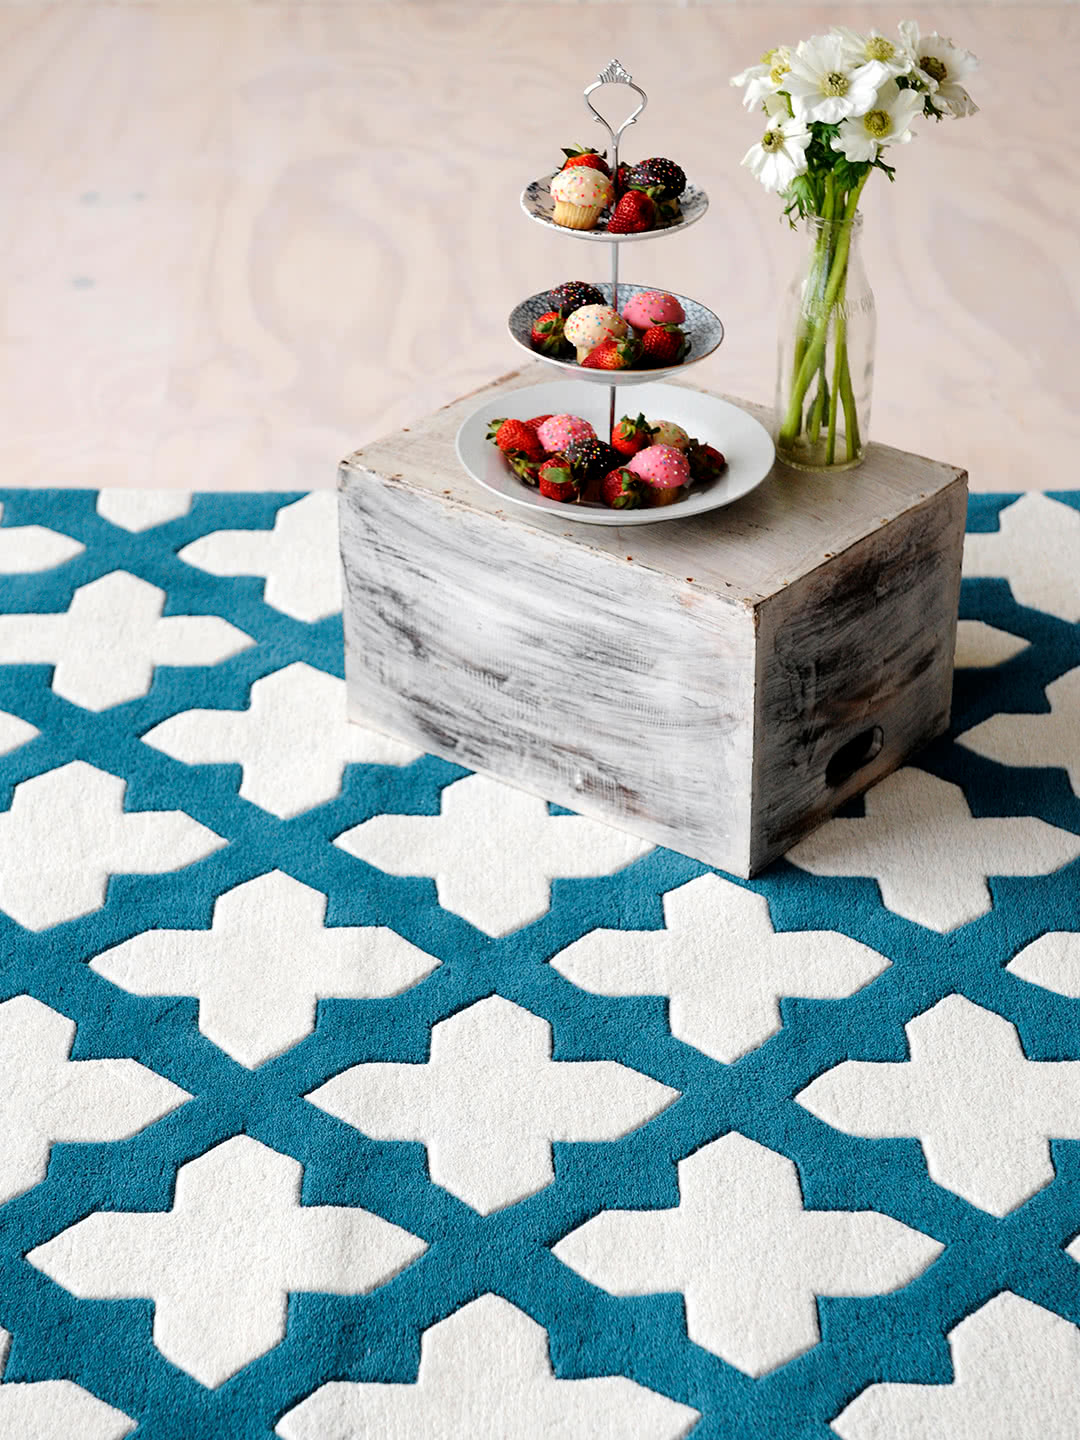 Empire-Aqua wool rugs Perth